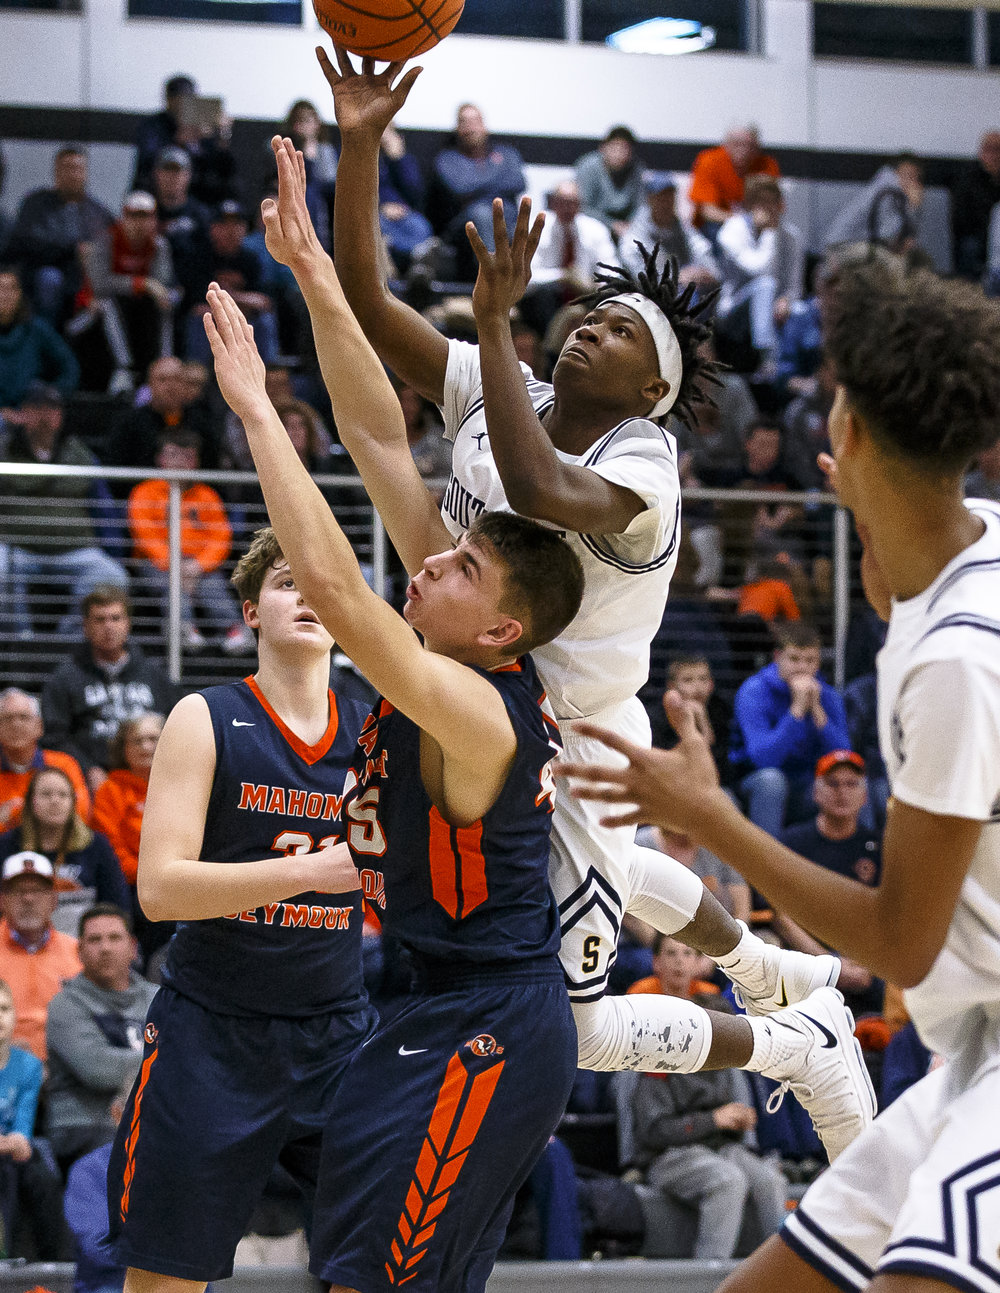 Southeast's Stepheon Sims (32) goes up to the basket against Mahomet-Seymour's Noah Benedict (45) in the second half during the Class 3A Decatur Eisenhower Sectional semifinals at Eisenhower High School, Wednesday, March 7, 2018, in Decatur, Ill. [Justin L. Fowler/The State Journal-Register]